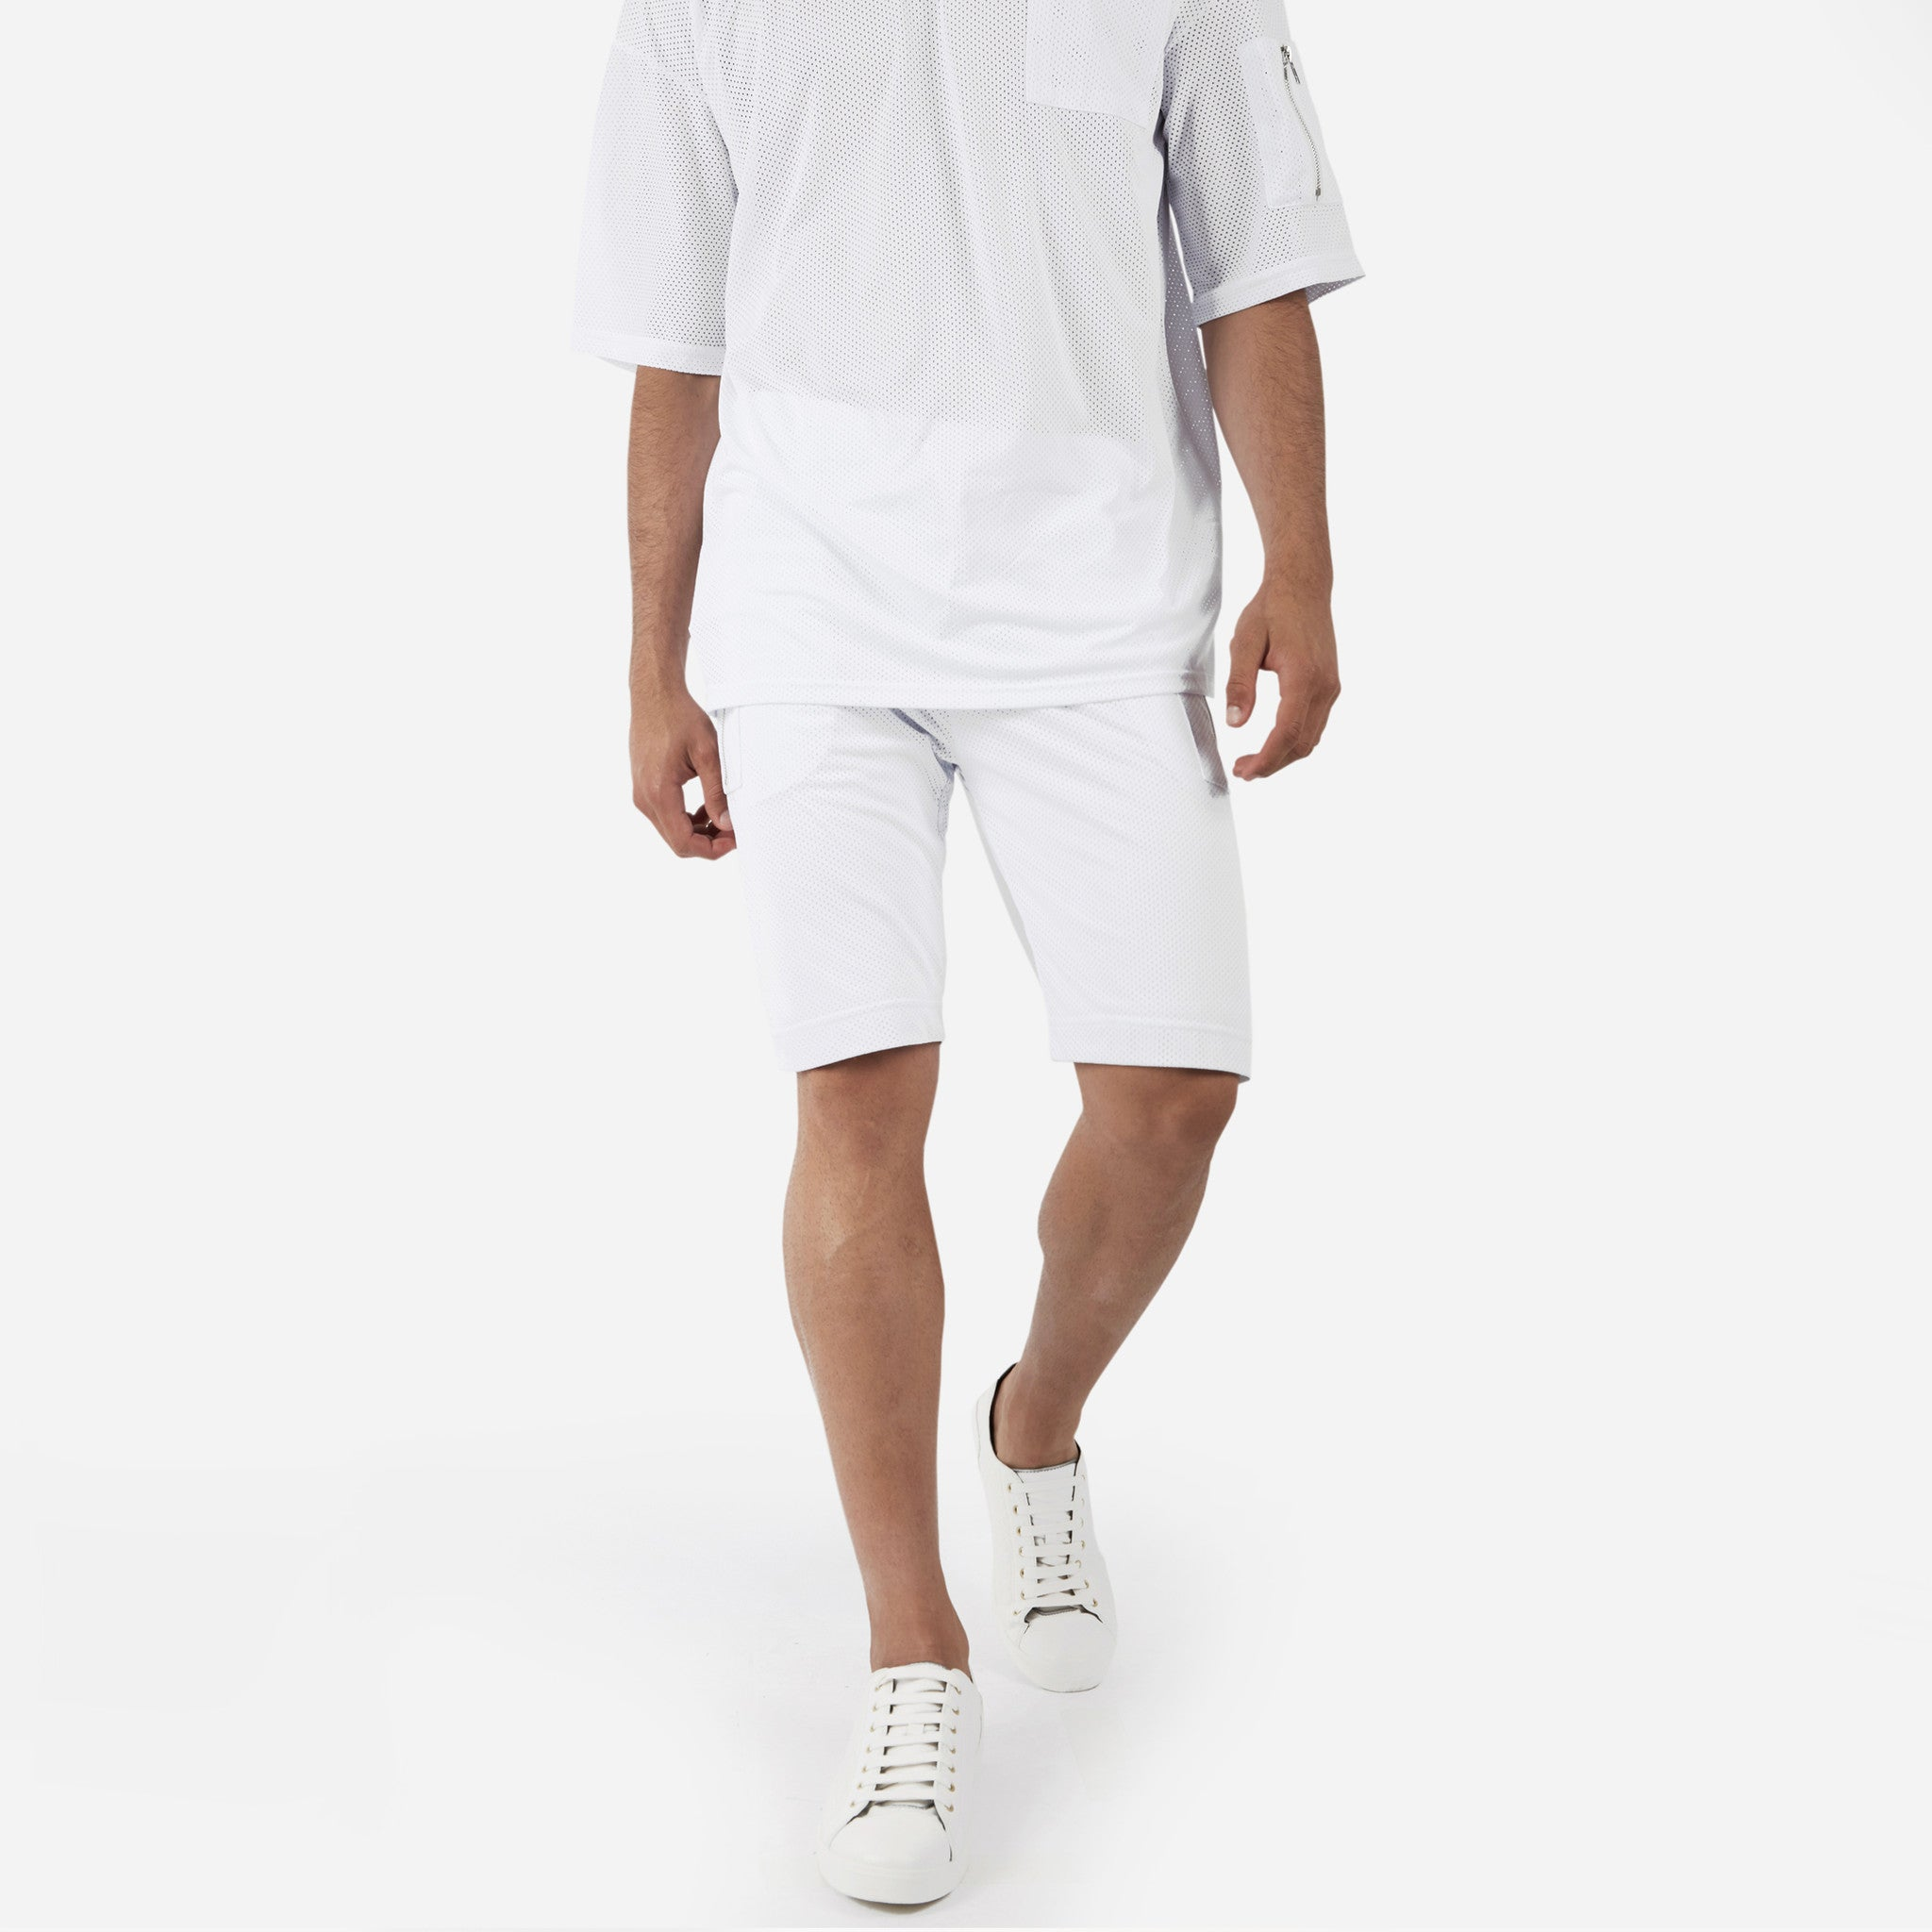 SR283 Utility Airtex Shorts - White - underated london - underatedco - 4